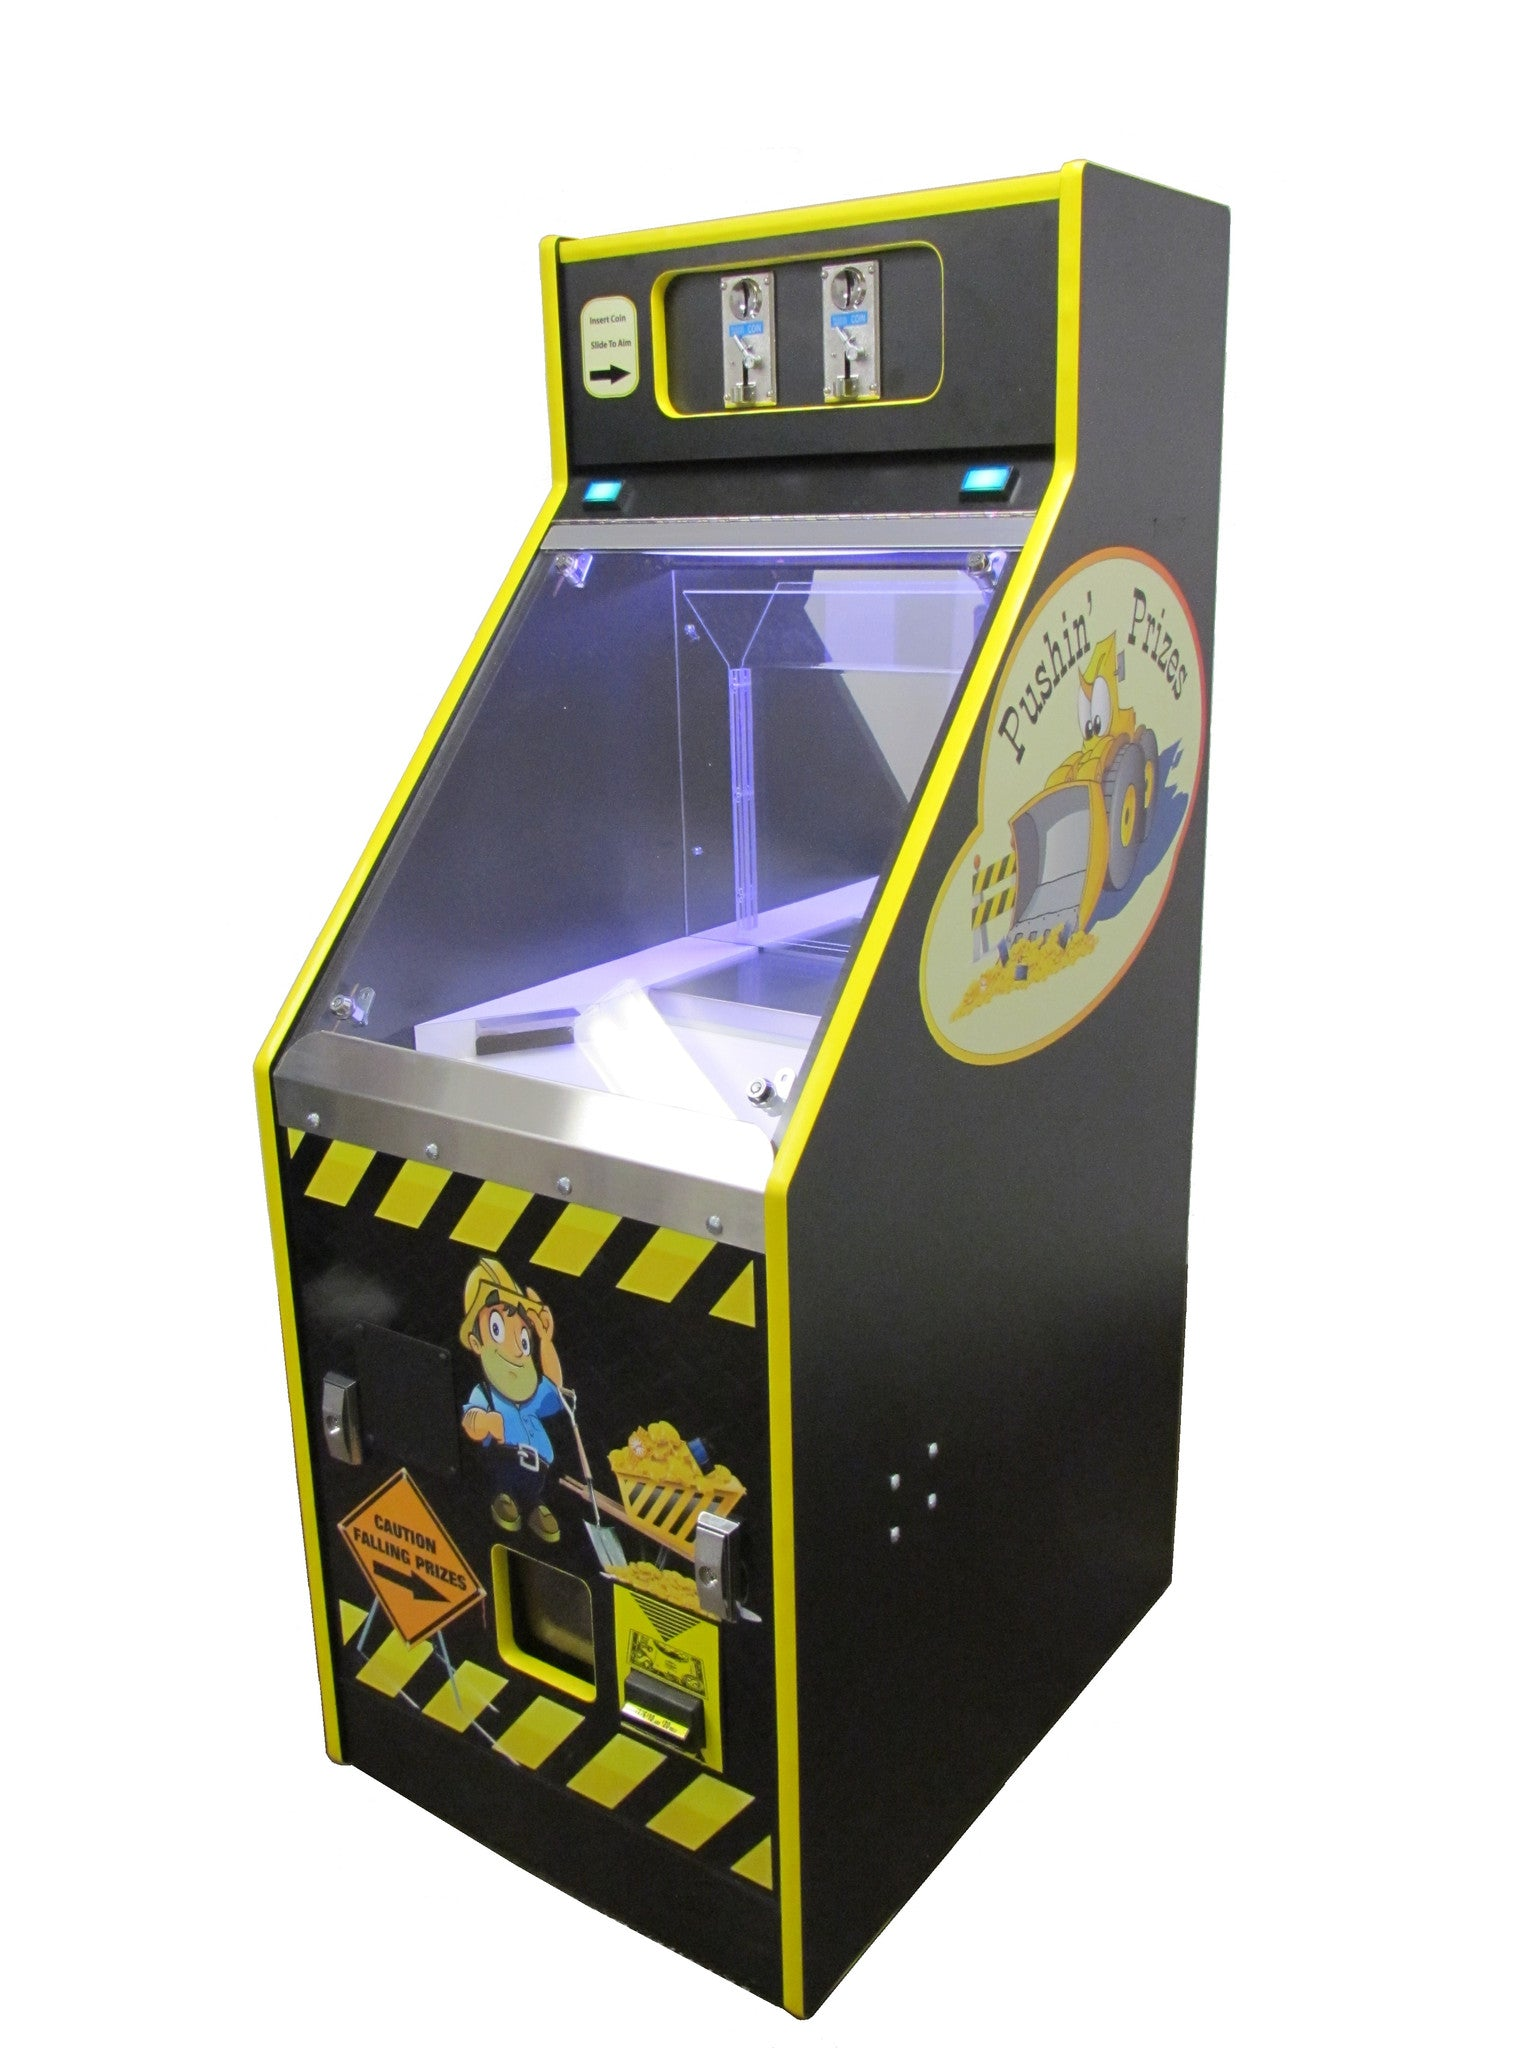 Win prizes playing coin pusher